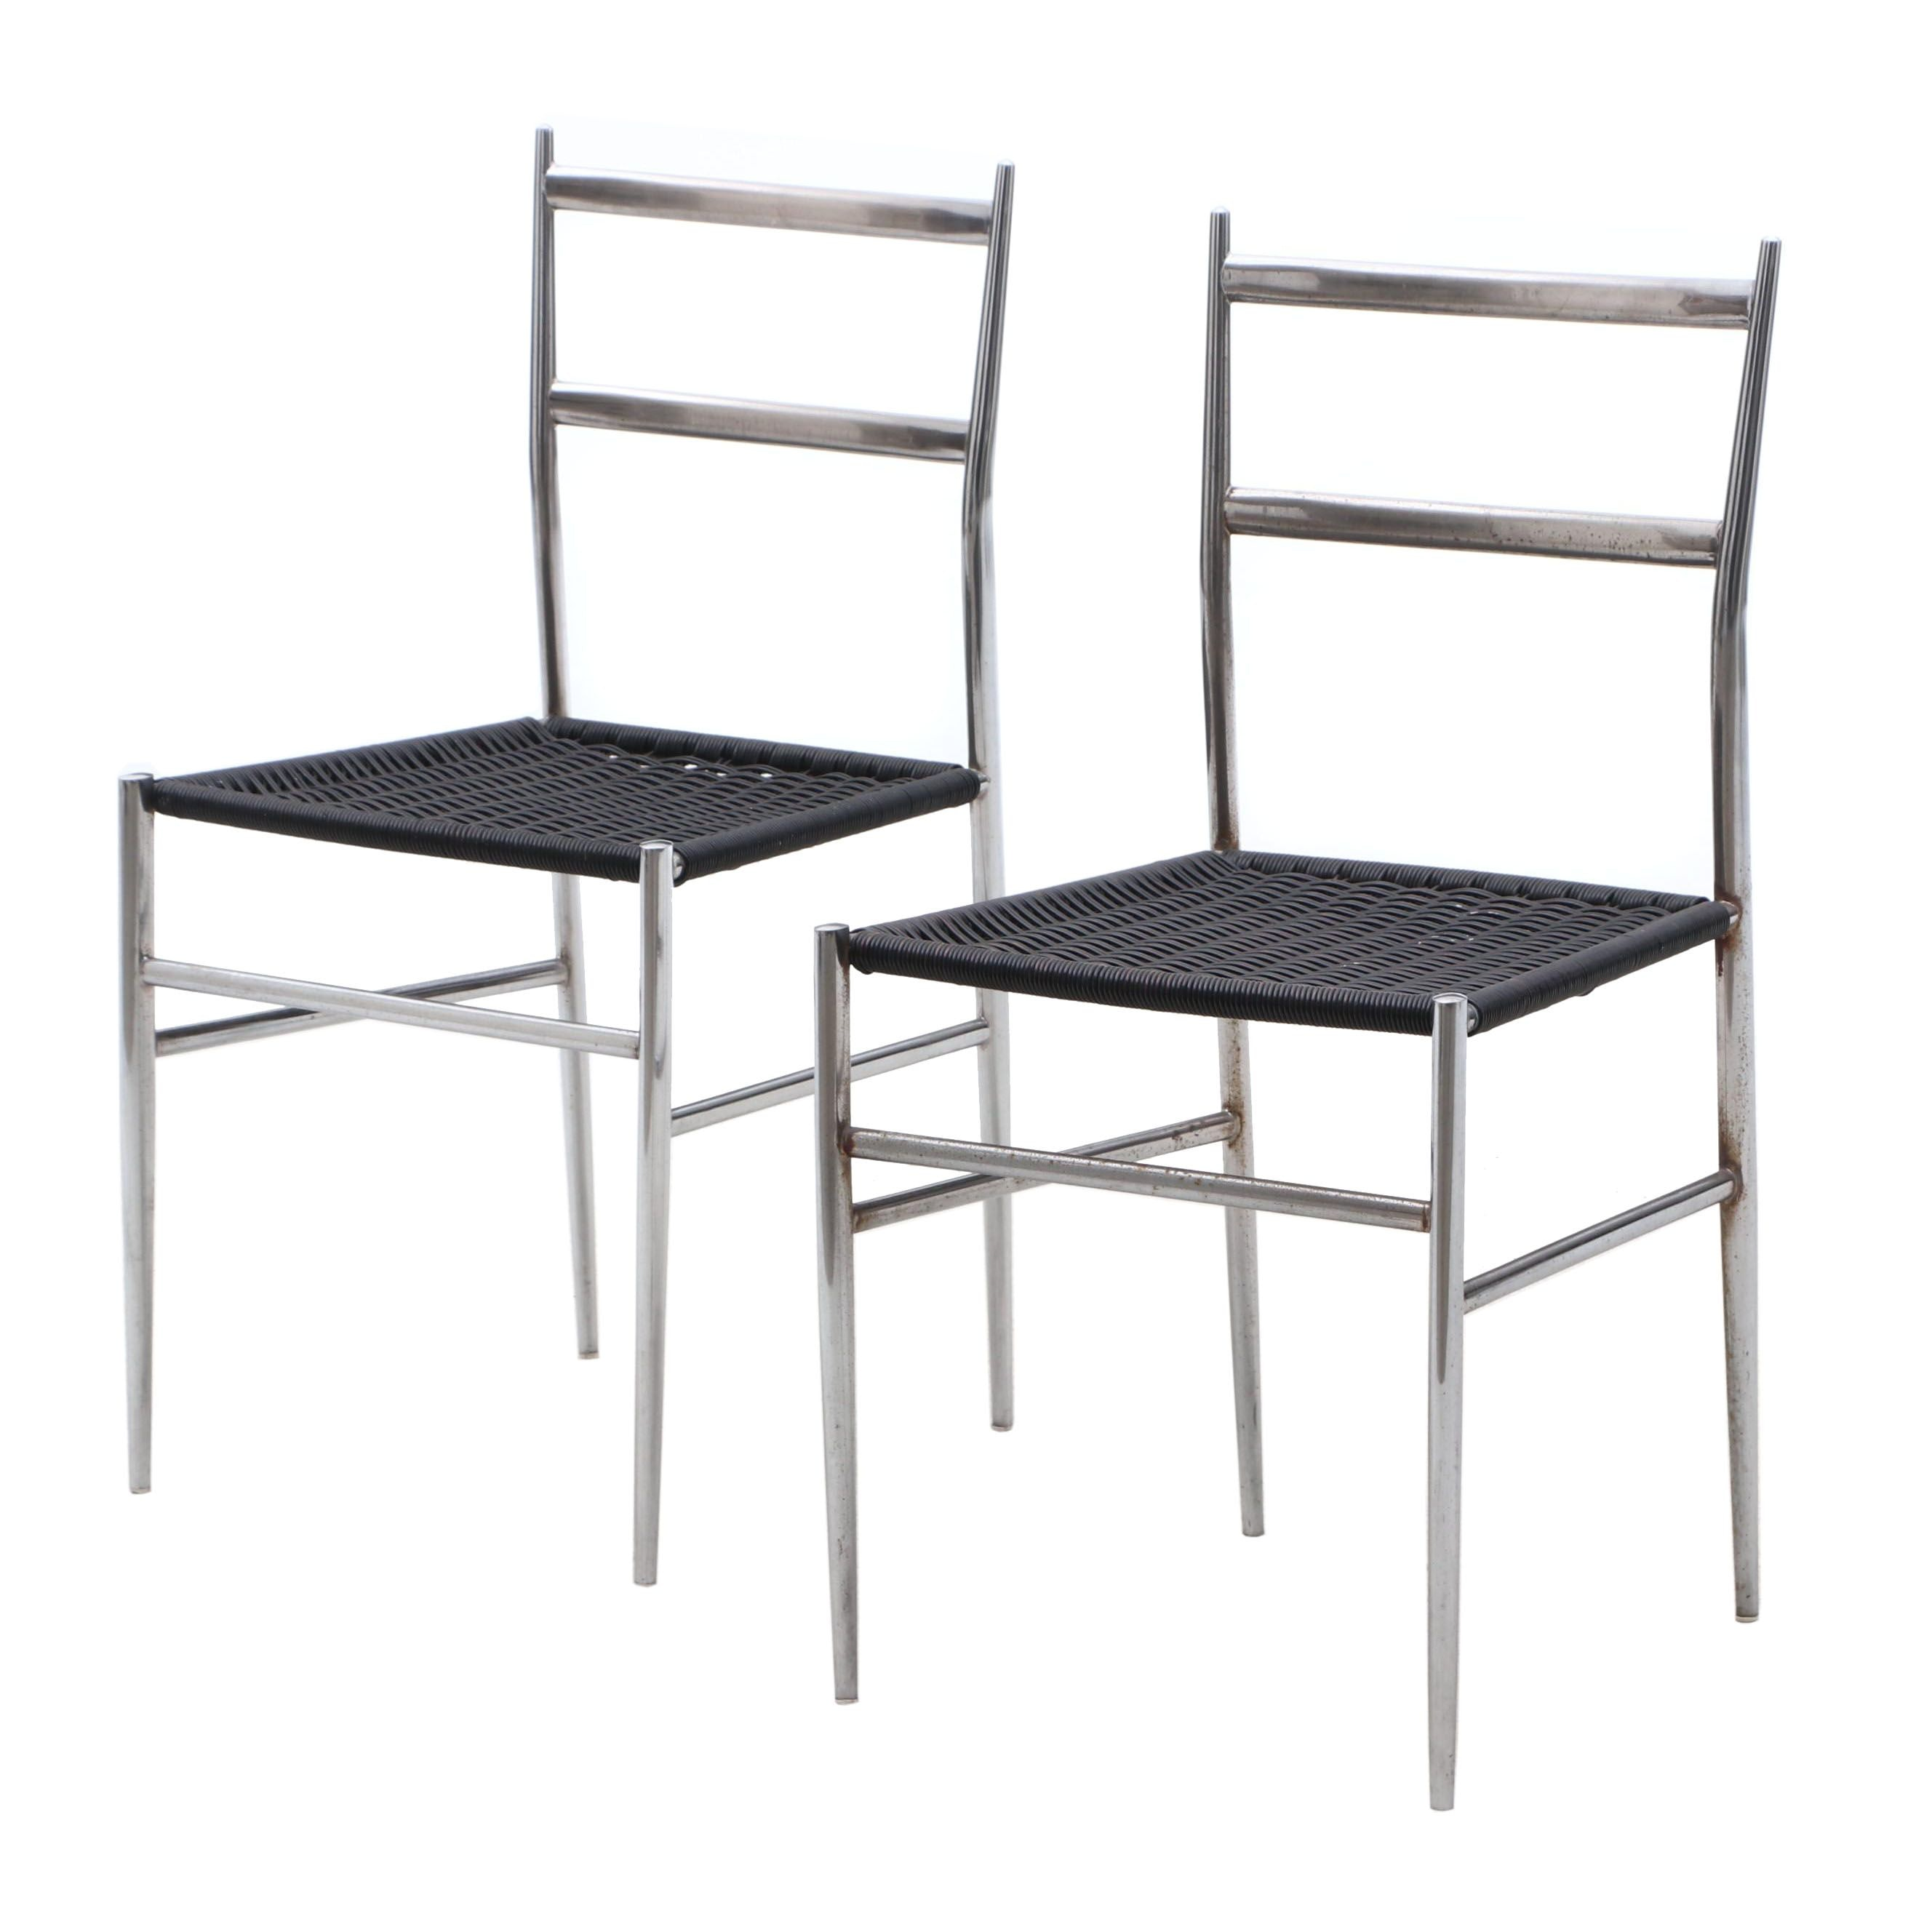 Two Chrome-Framed Wicker Chairs, Style of Gio Ponti